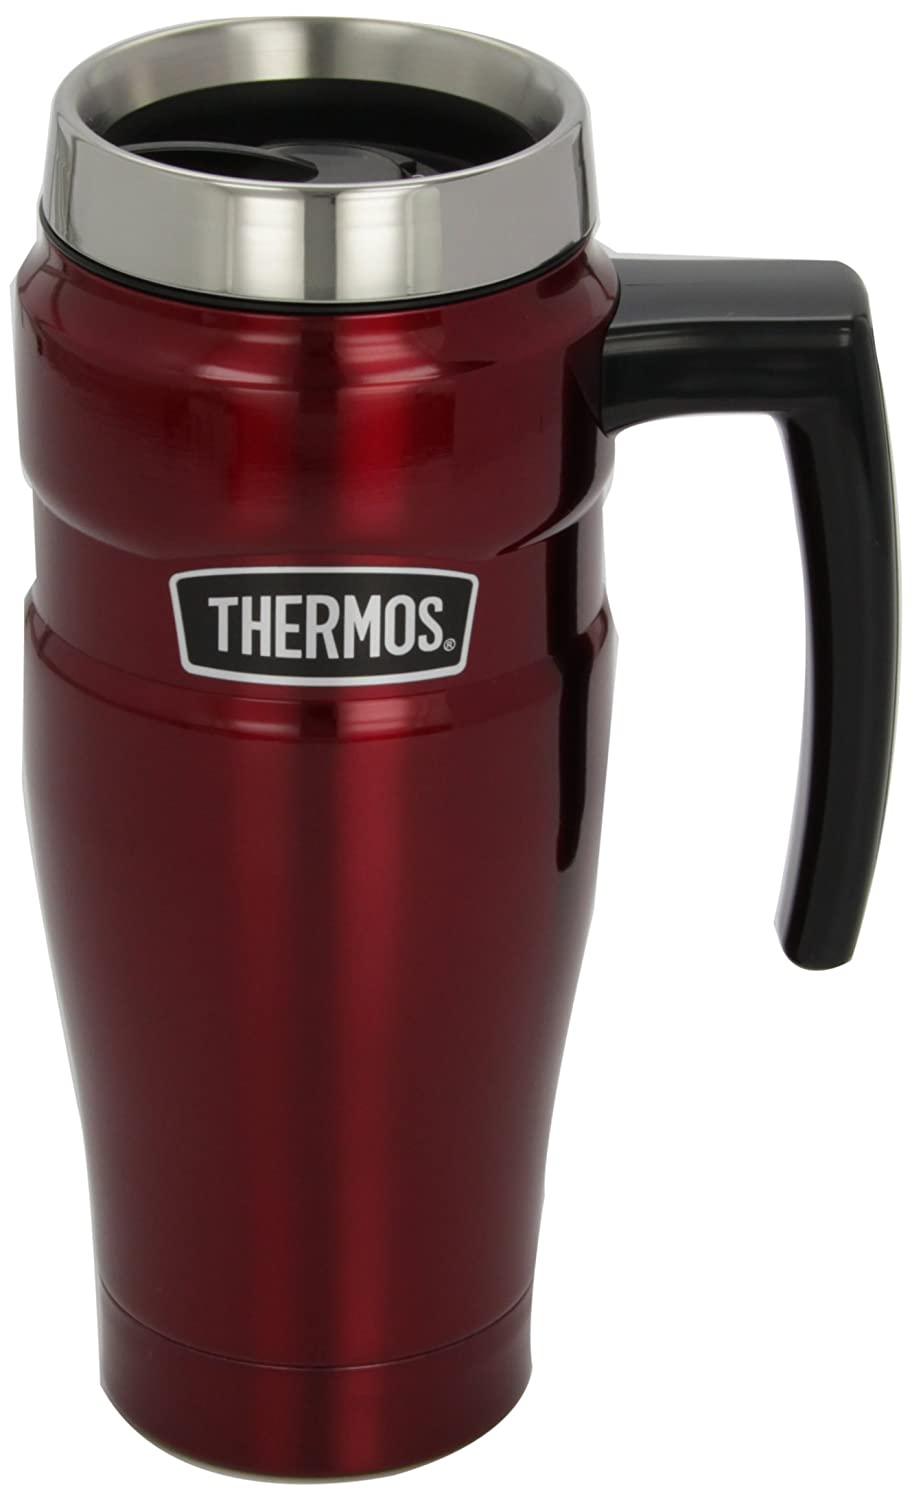 Thermos travel mug with handle images - Thermos a the ...